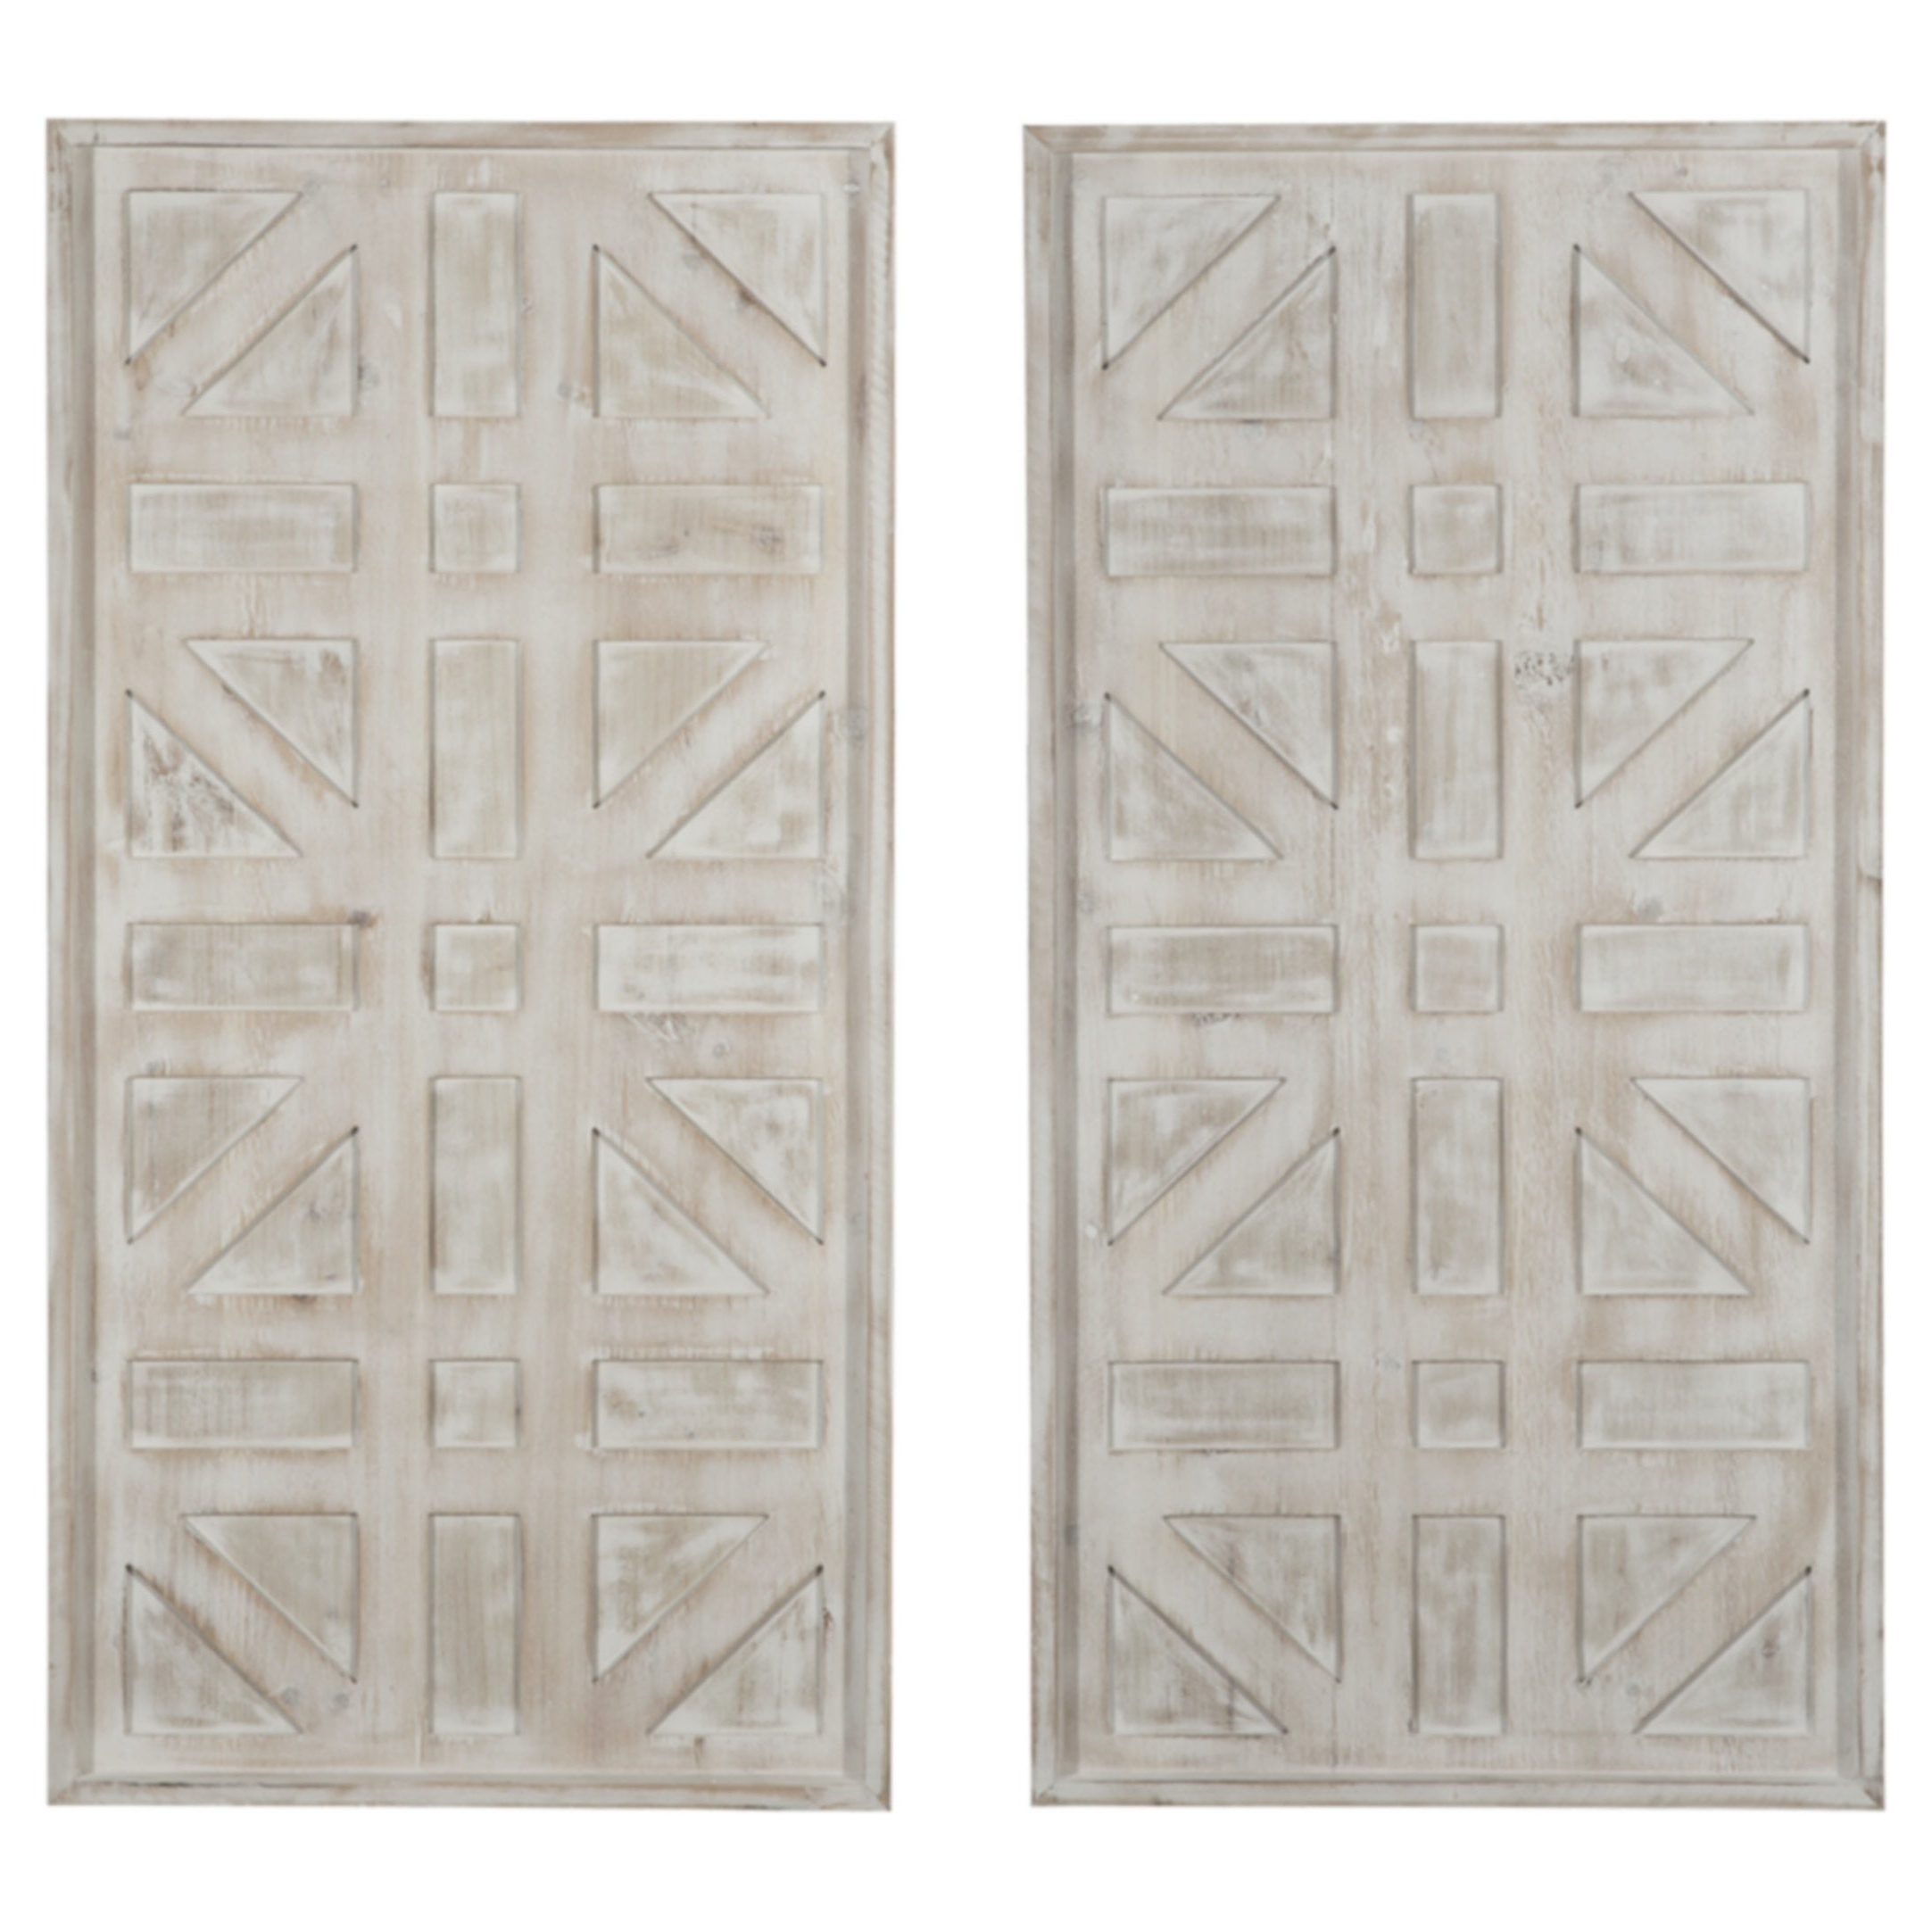 Find Great Art Gallery Deals Shopping At Overstock With Regard To Current Panel Wood Wall Decor Sets (Set Of 2) (Gallery 13 of 20)